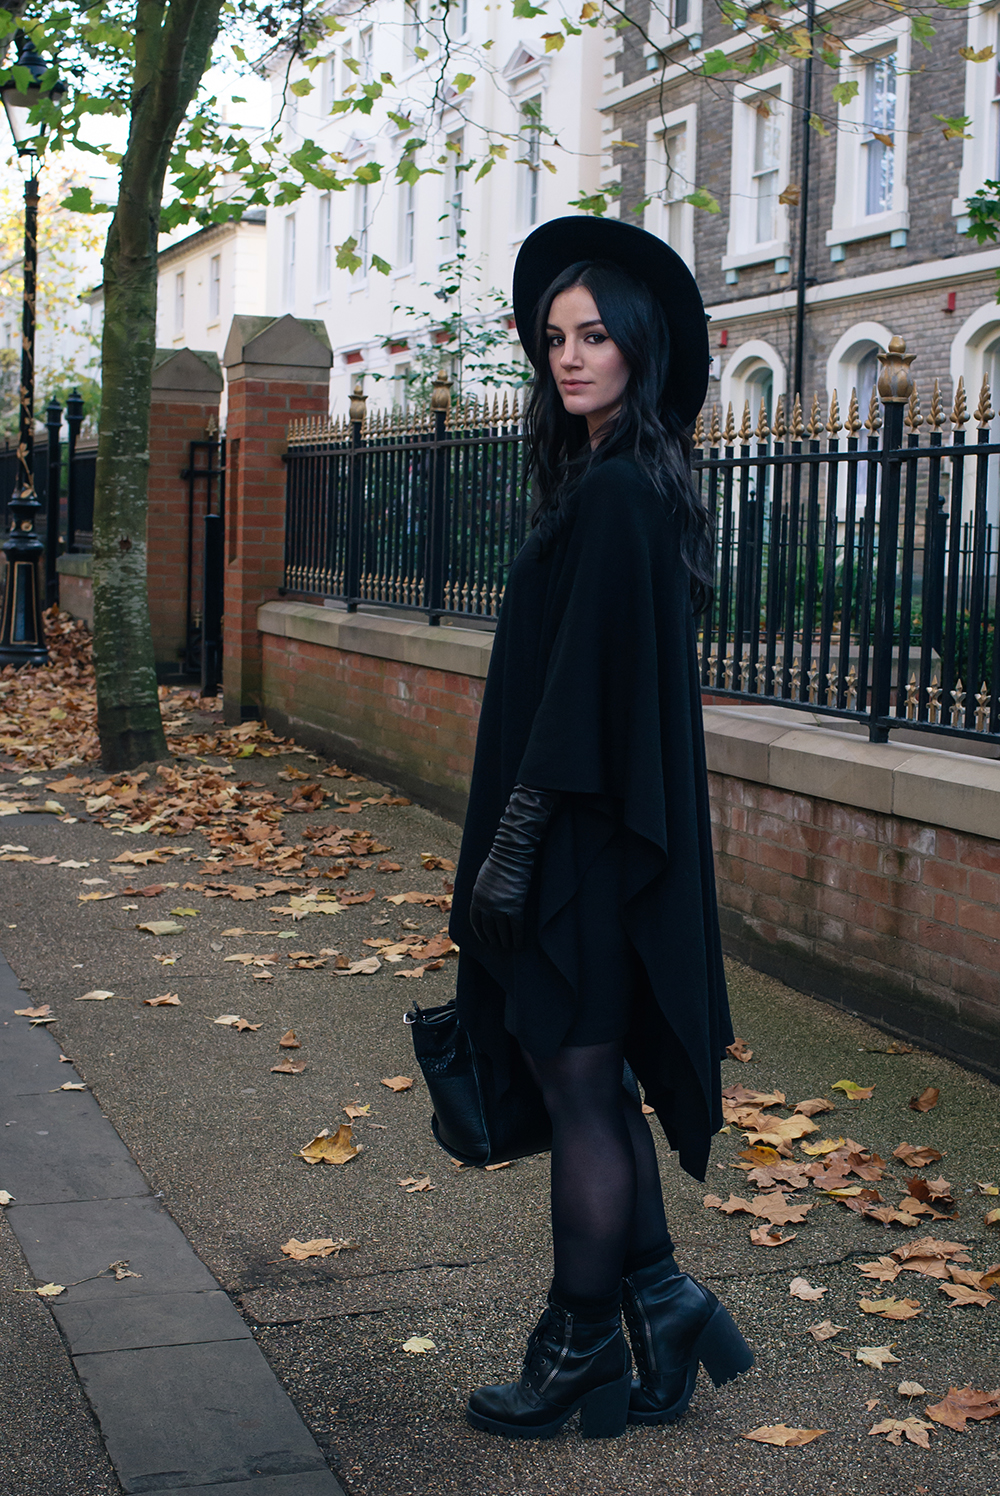 Fashion blogger Stephanie of FAIIINT wearing ASOS cape, H&M wide brim fedora, Black elbow high leather gloves, ASH poker lace up boots. Gothic style all black autumn outfit.